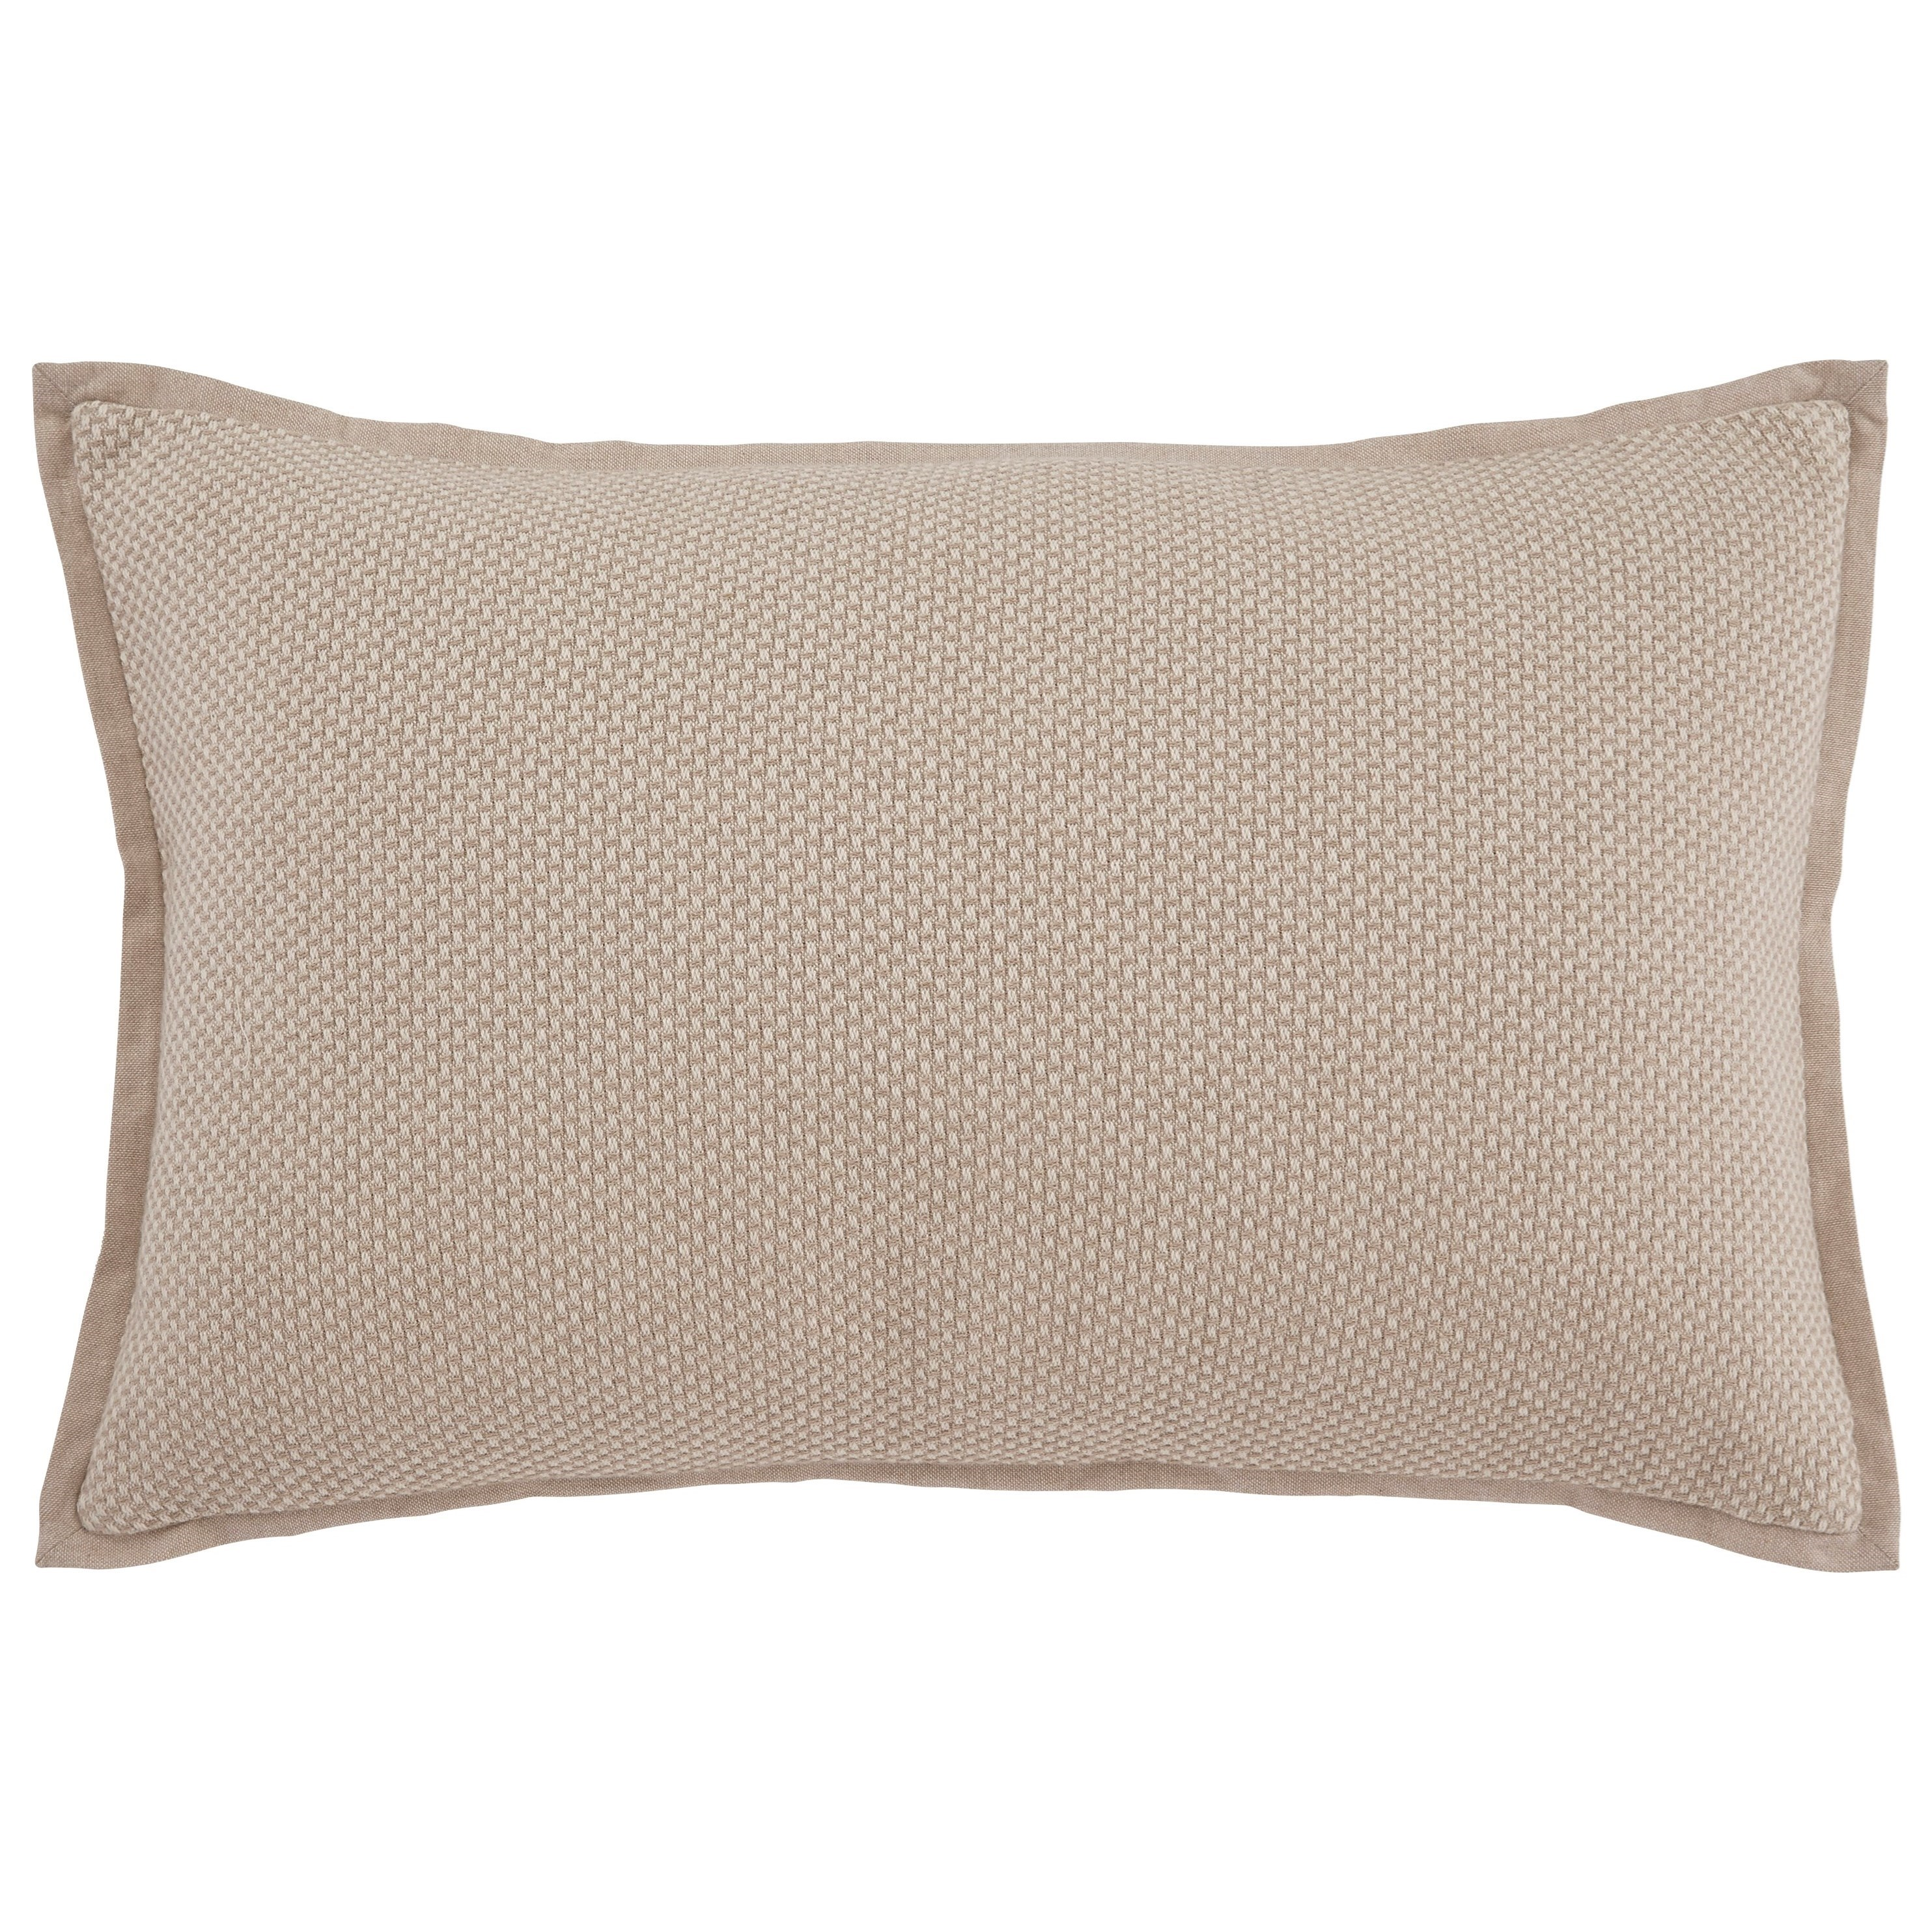 Signature Design by Ashley Pillows Leonie - Natural Pillow - Item Number: A1000648P